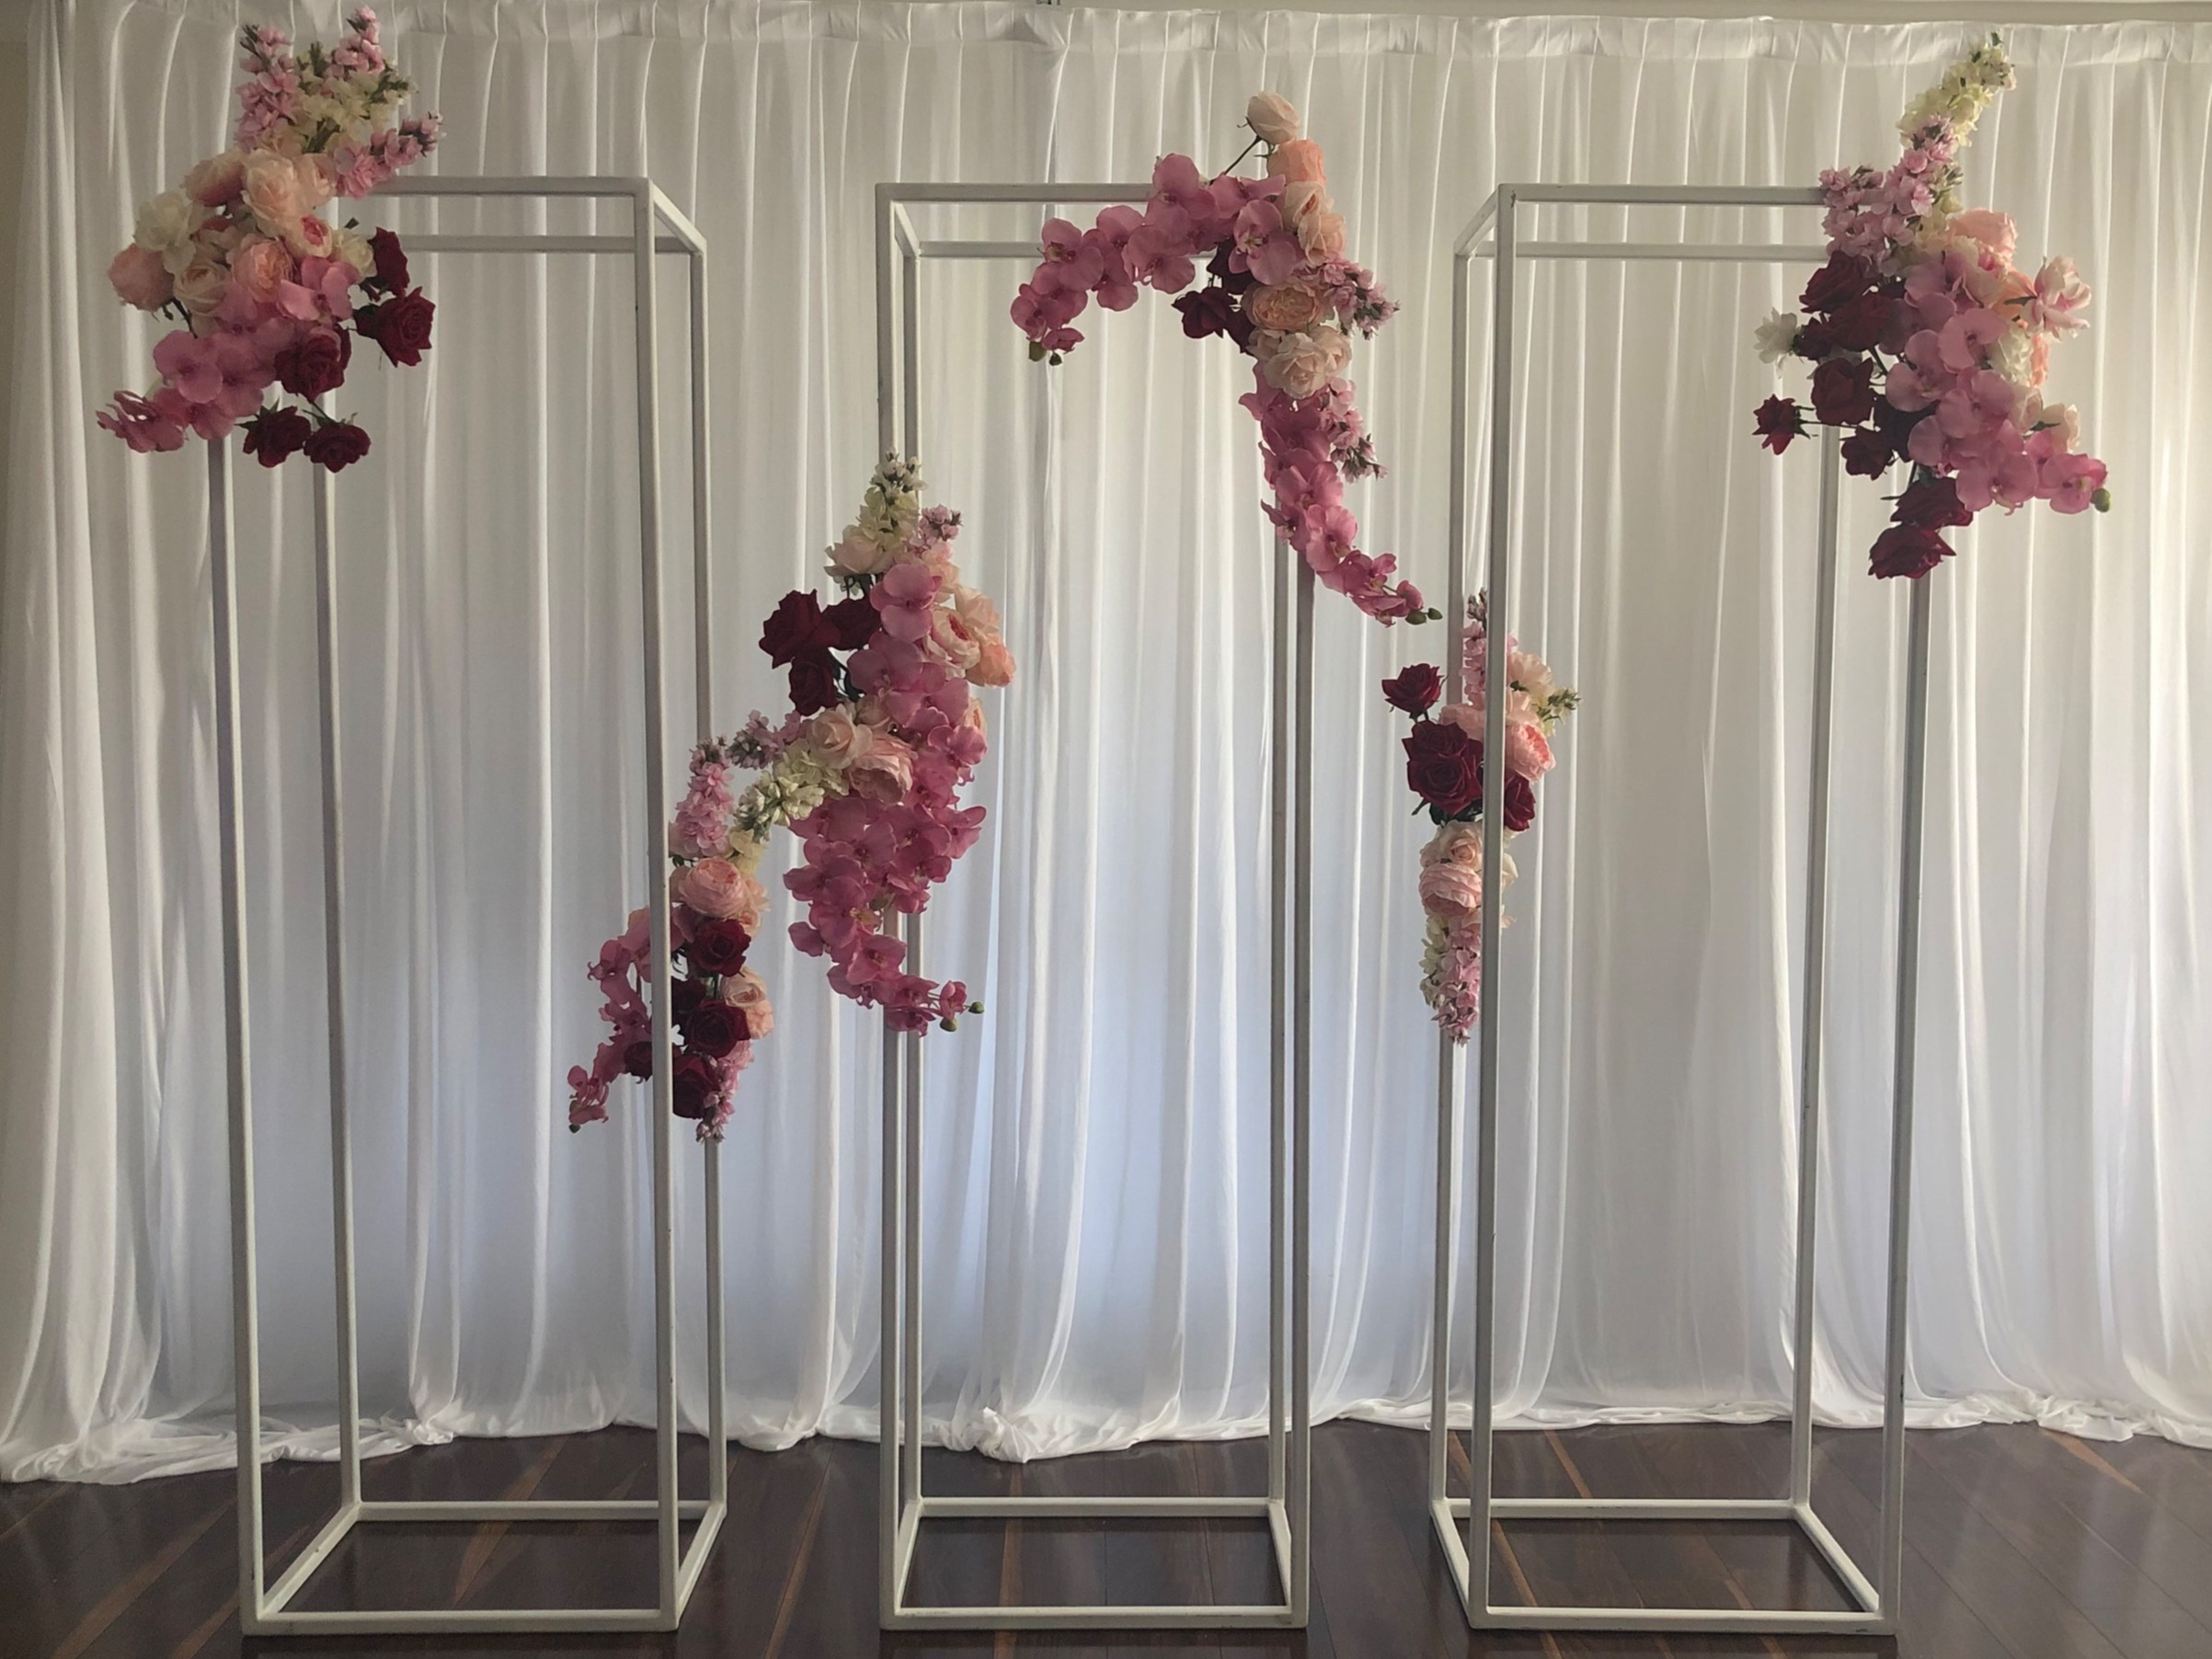 White rectangle frame display stand shown with plain white backdrop and our Lola artificial floral